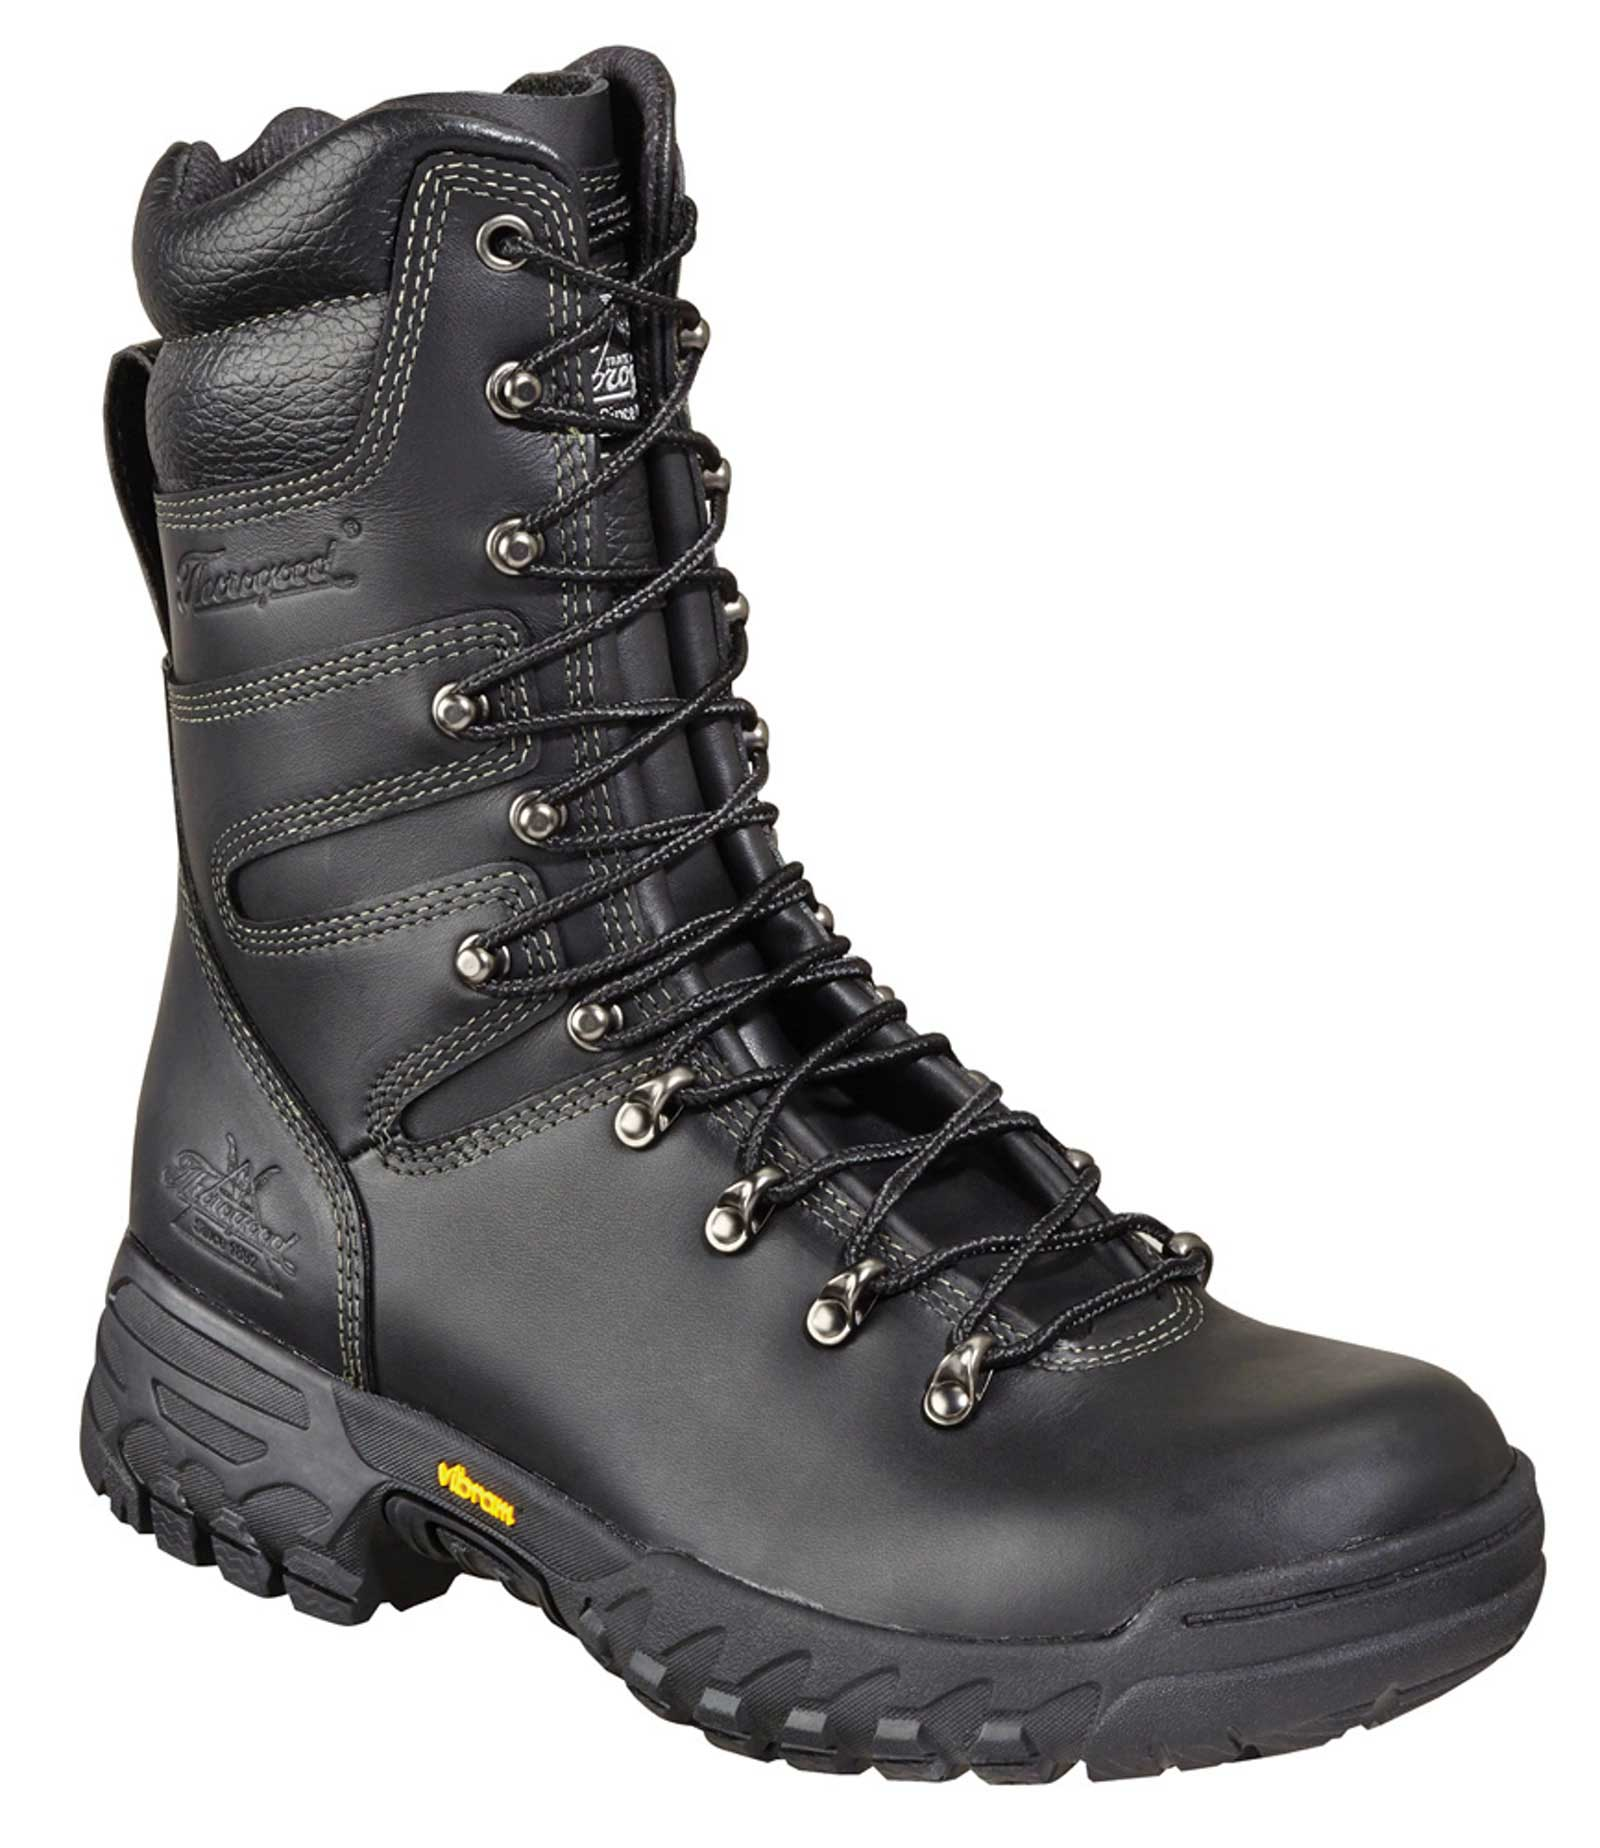 f83c8d60028 Details about Thorogood Men's 9